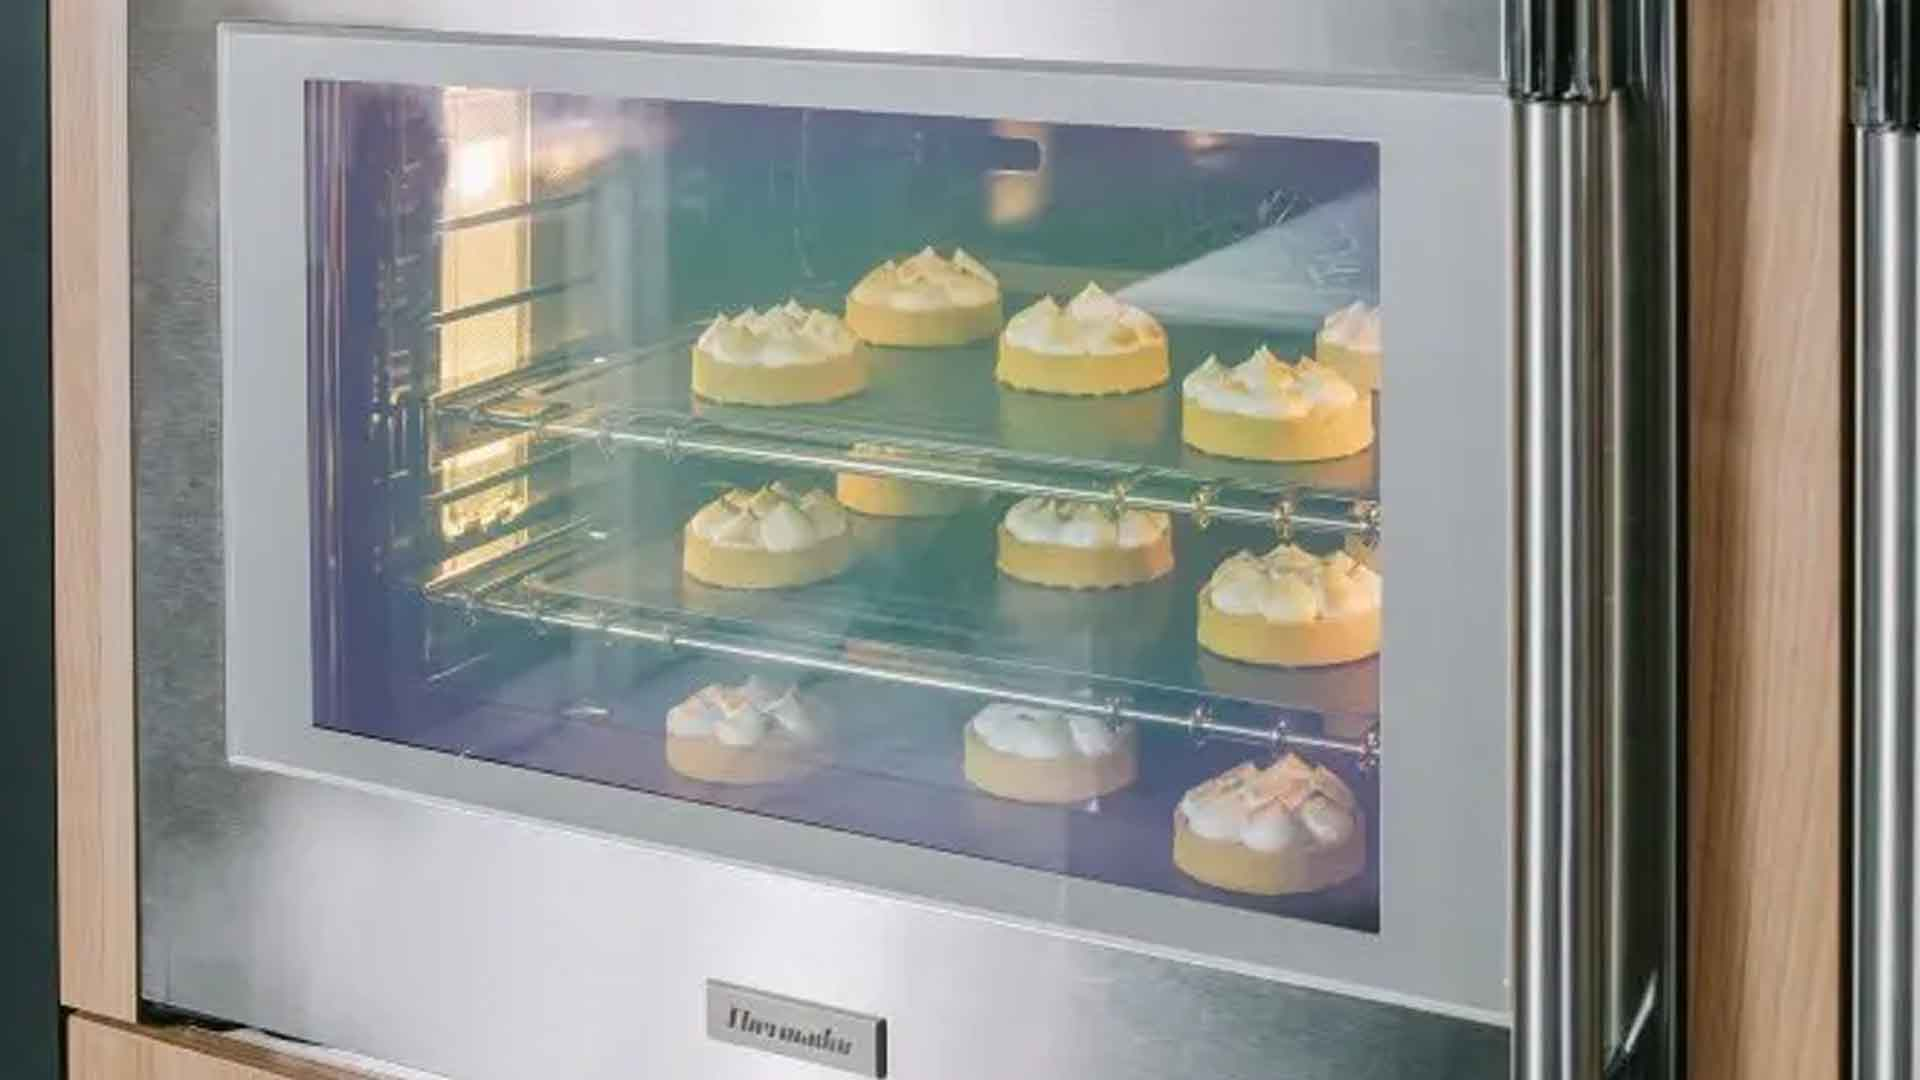 Thermador Wall Oven Repair Service | Thermador Appliance Repair Pros